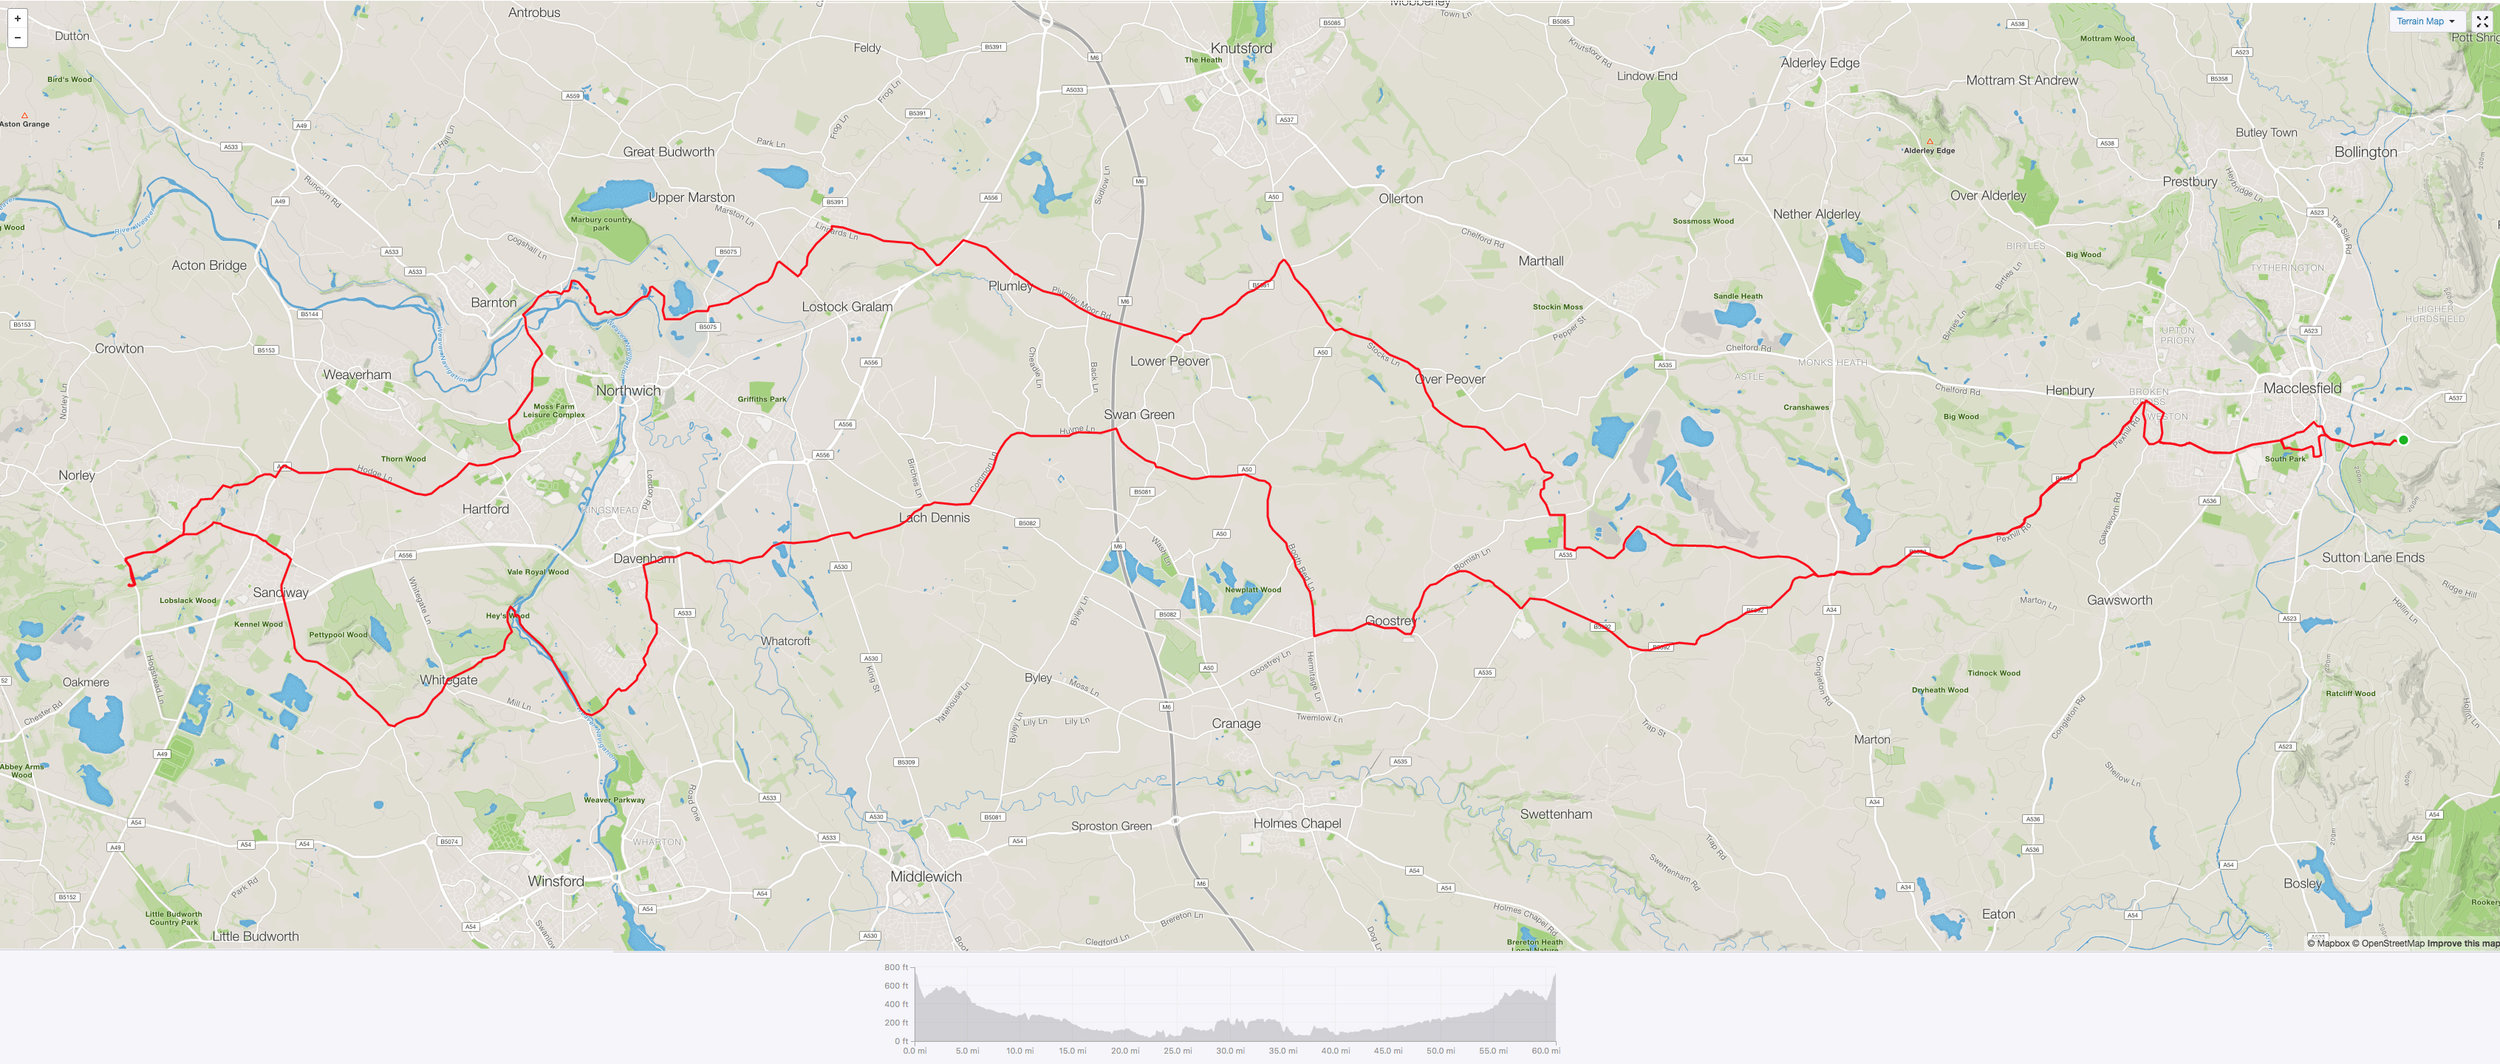 Todays route. Click to enlarge.